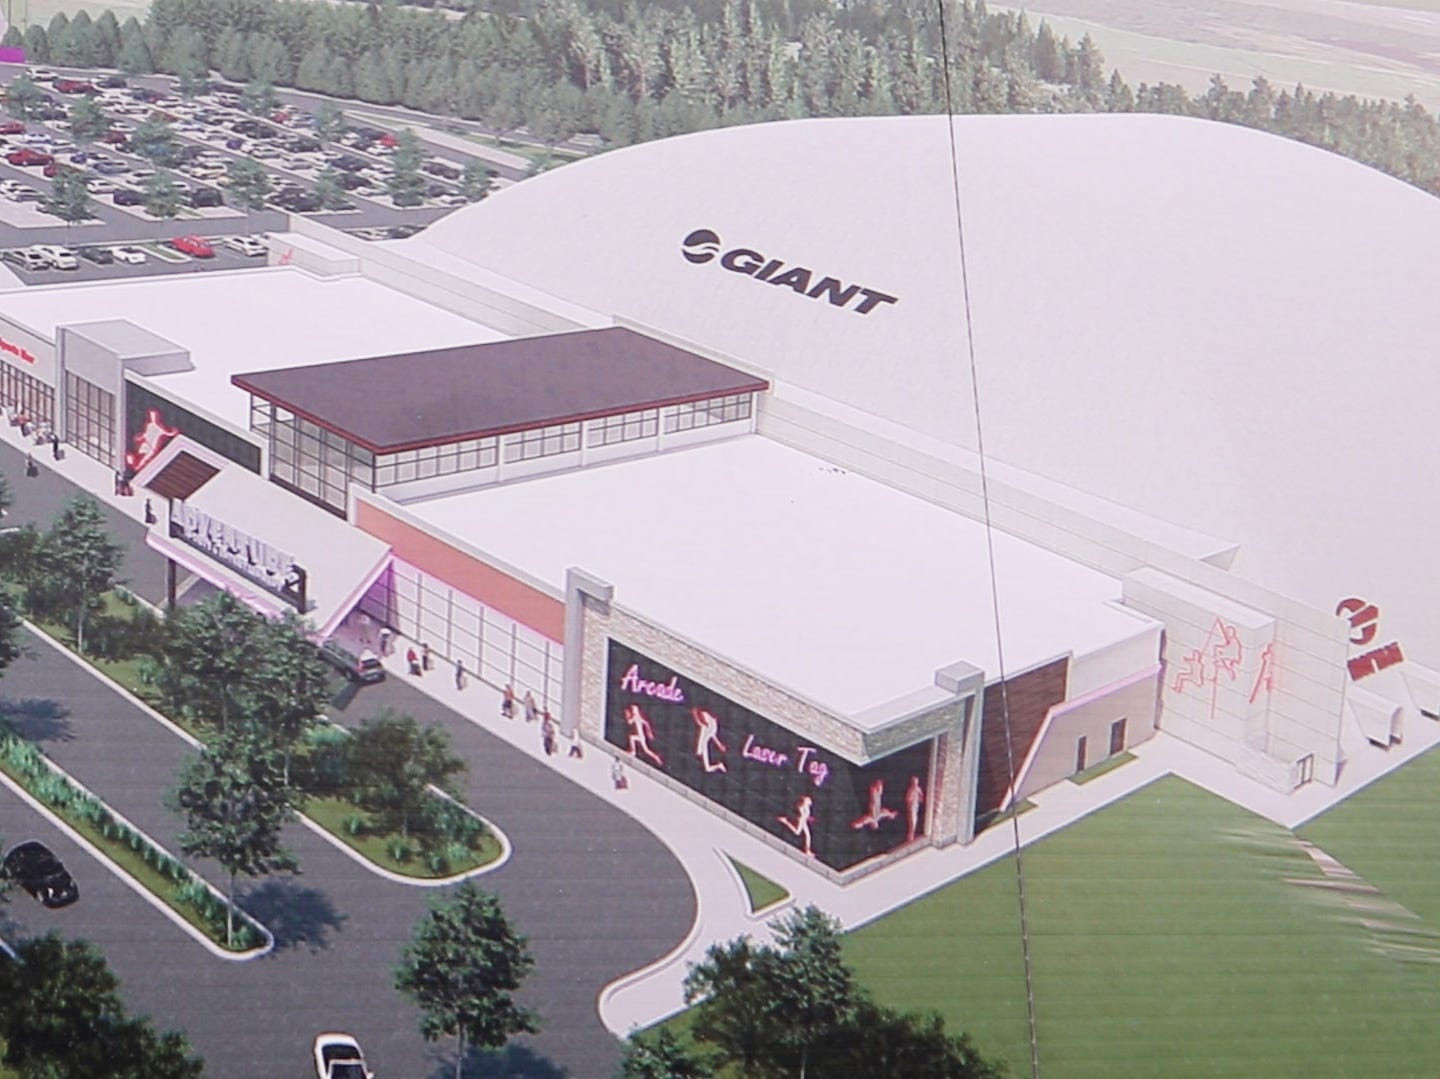 Copy photographs of renderings and design work. Adventure Sports & Entertainment is under construction in Jackson. The $500 million project to bring a youth sports venue to approximately 300 acres of land between Interstate 195 and Six  Flags Great Adventure will soon move to its next phase. Jackson, NJTuesday, January 15, 2019